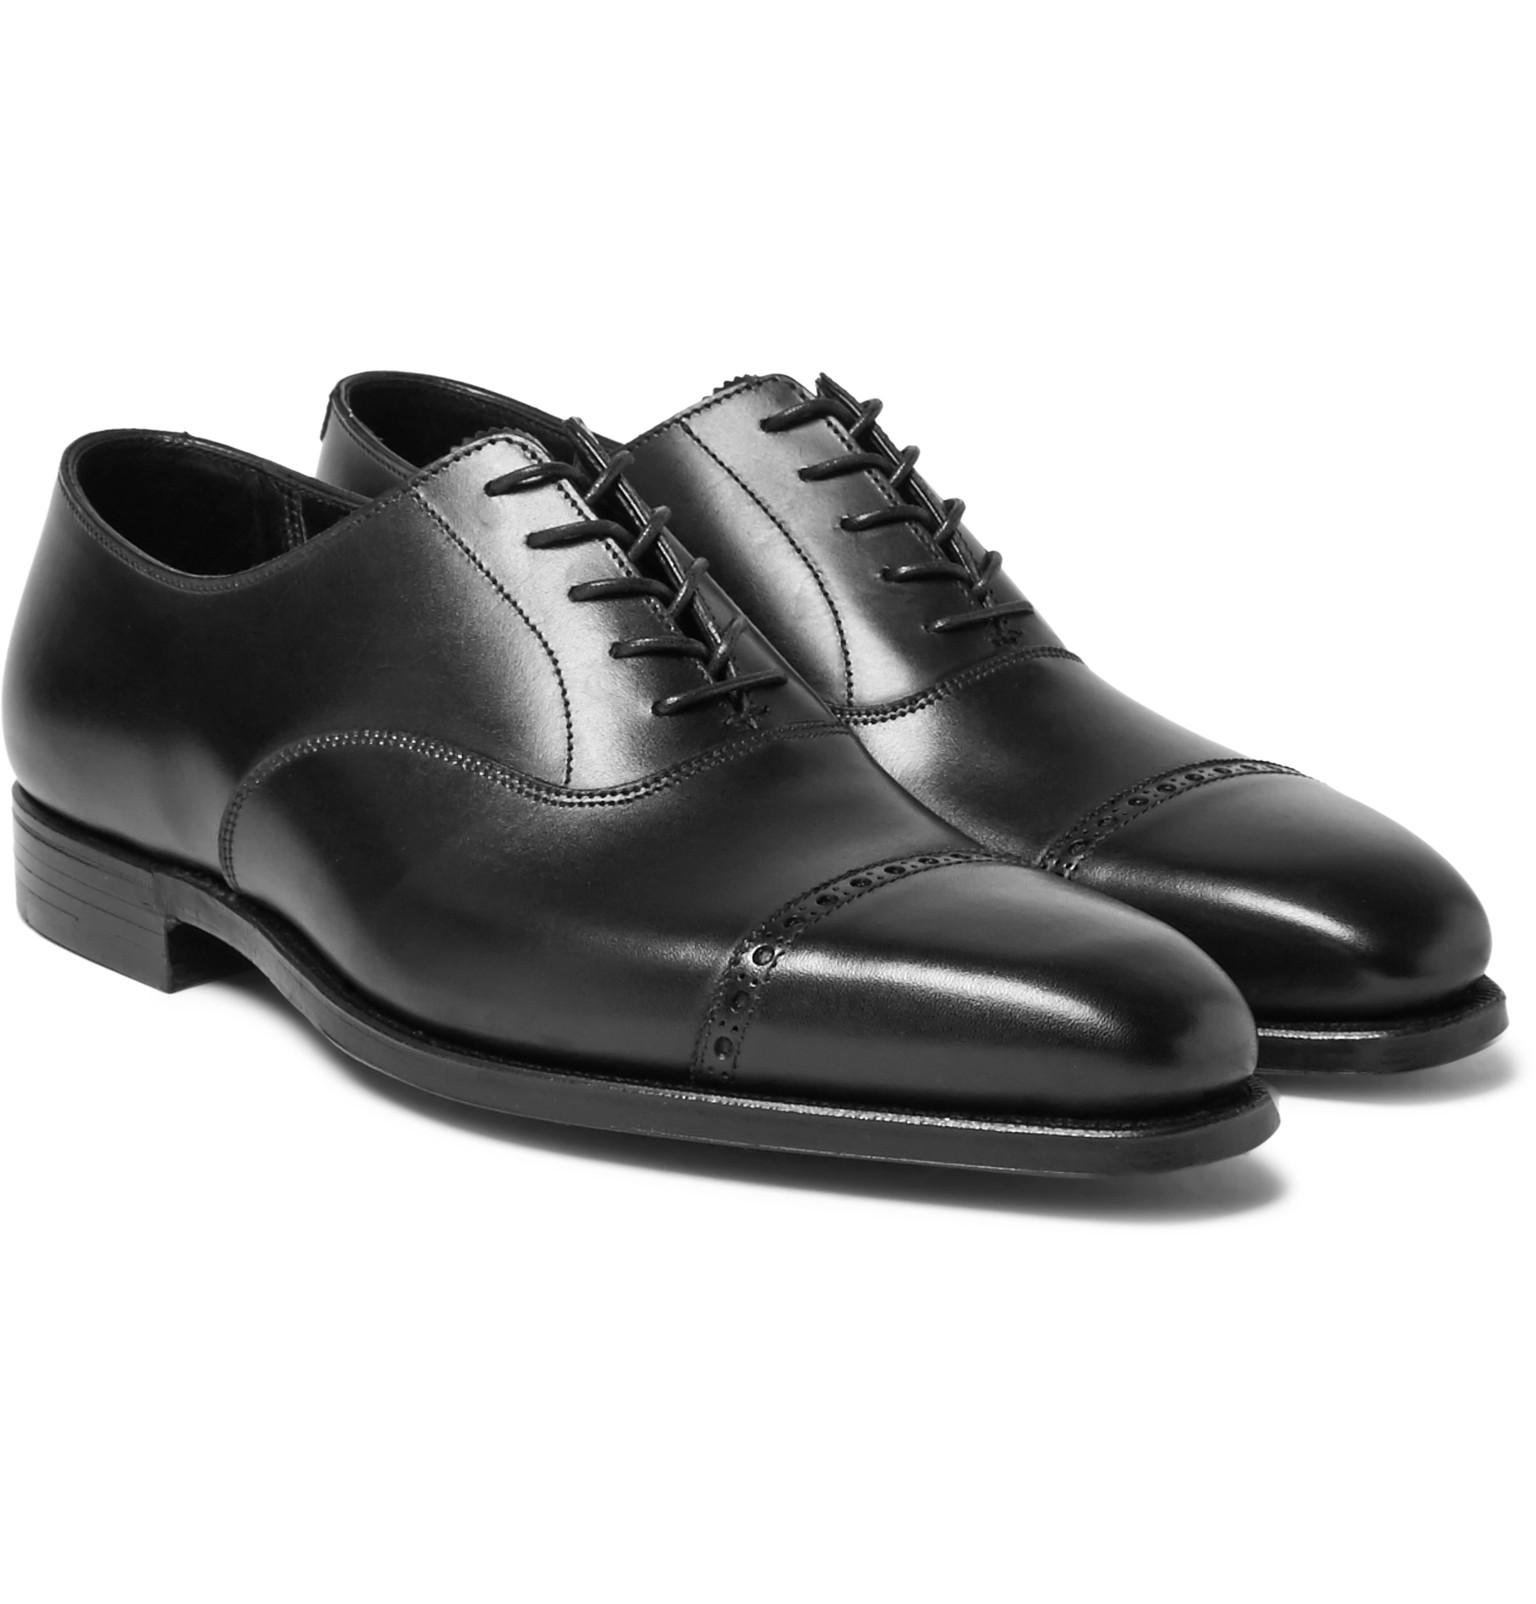 outlet nicekicks George Cleverley Charles Cap-Toe Leather Oxford Shoes brand new unisex sale online high quality buy online PYeUnfSfaE